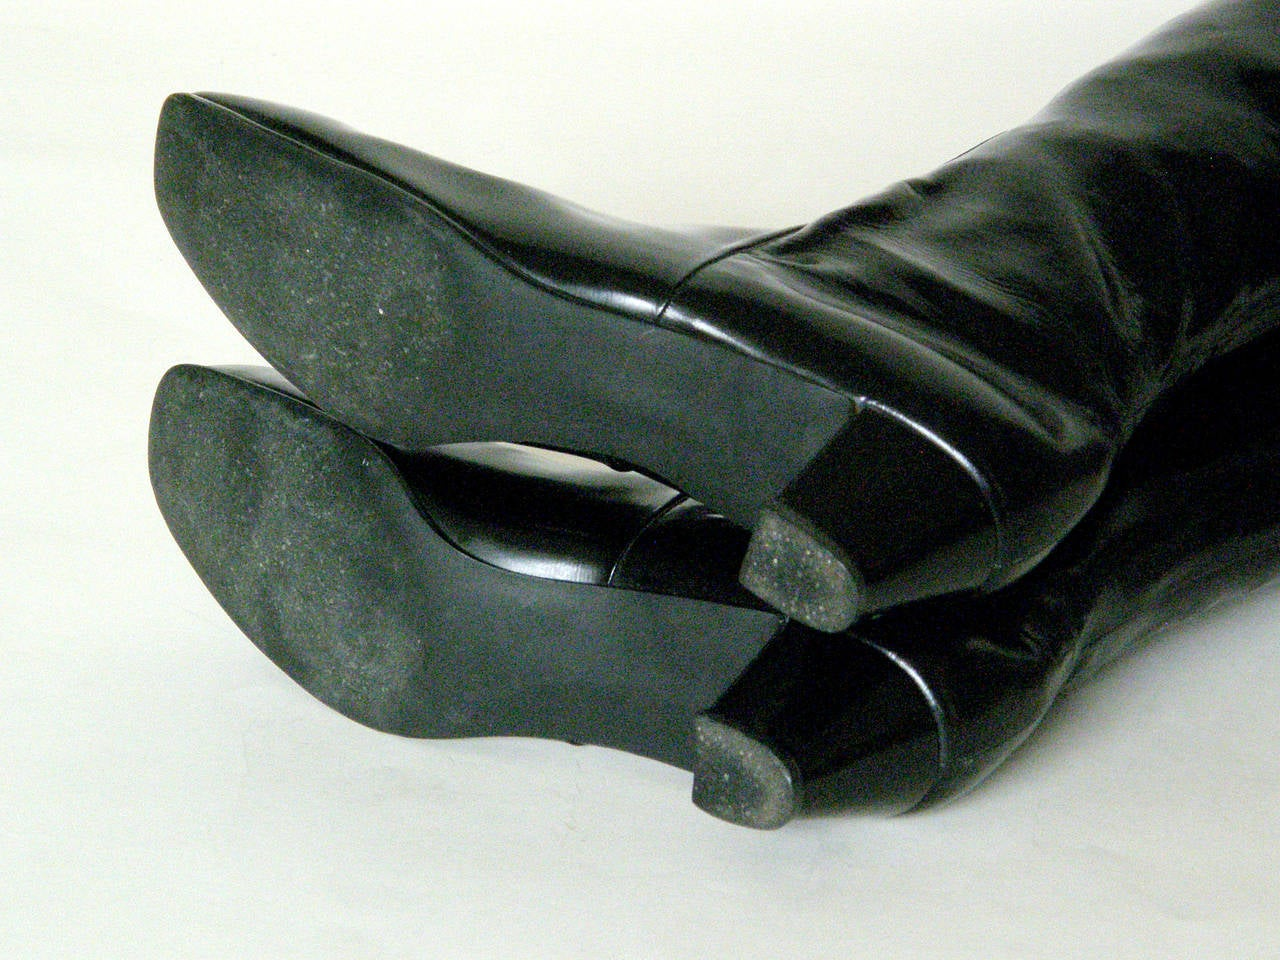 d3e410c04 Beth Levine Thigh High Black Vinyl Boots at 1stdibs